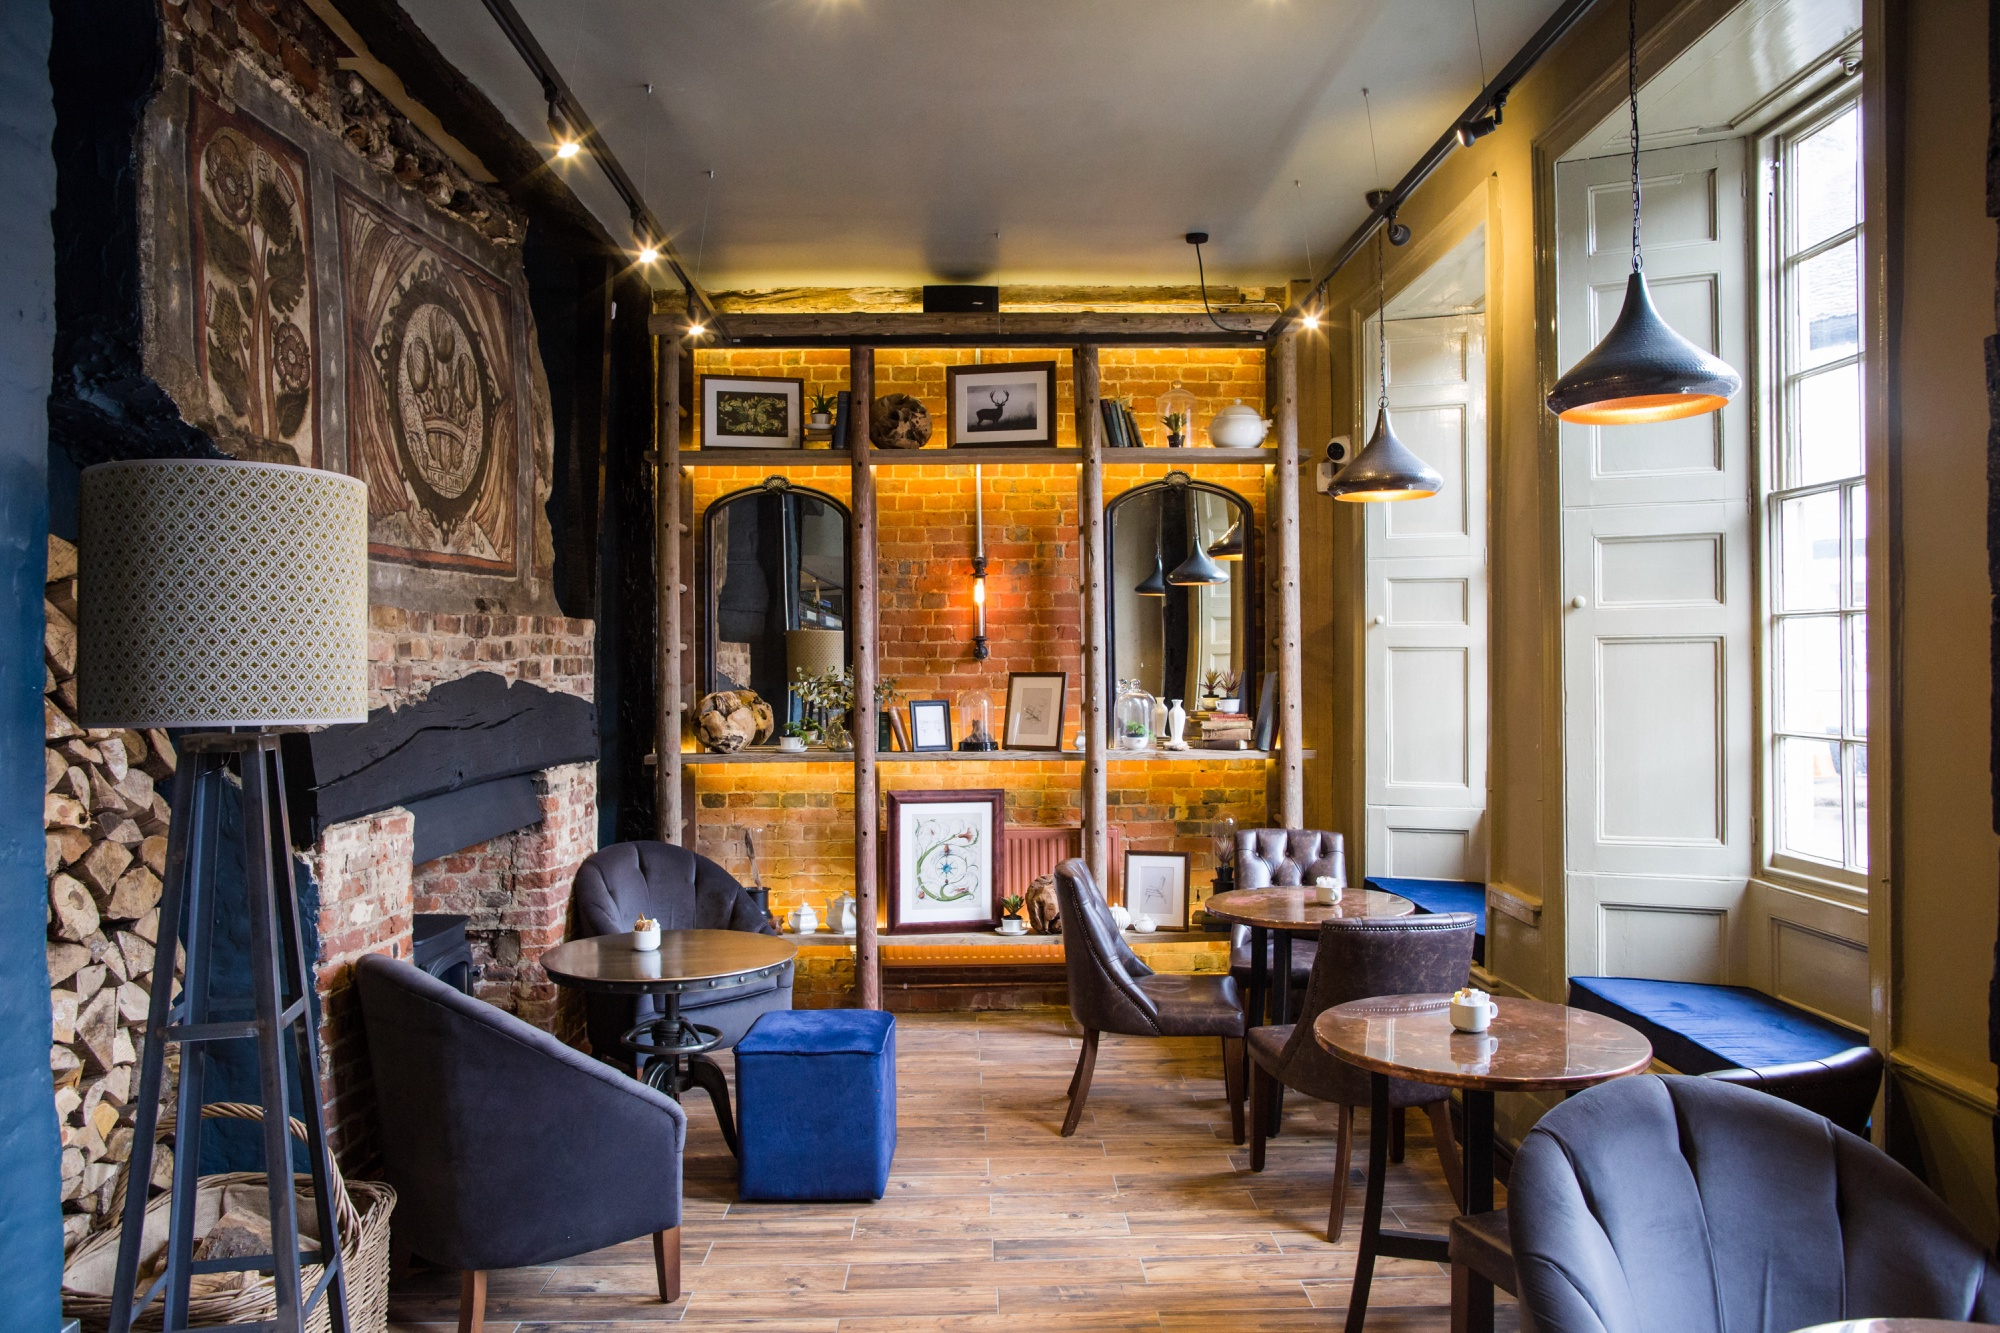 The Snug at the White Hart